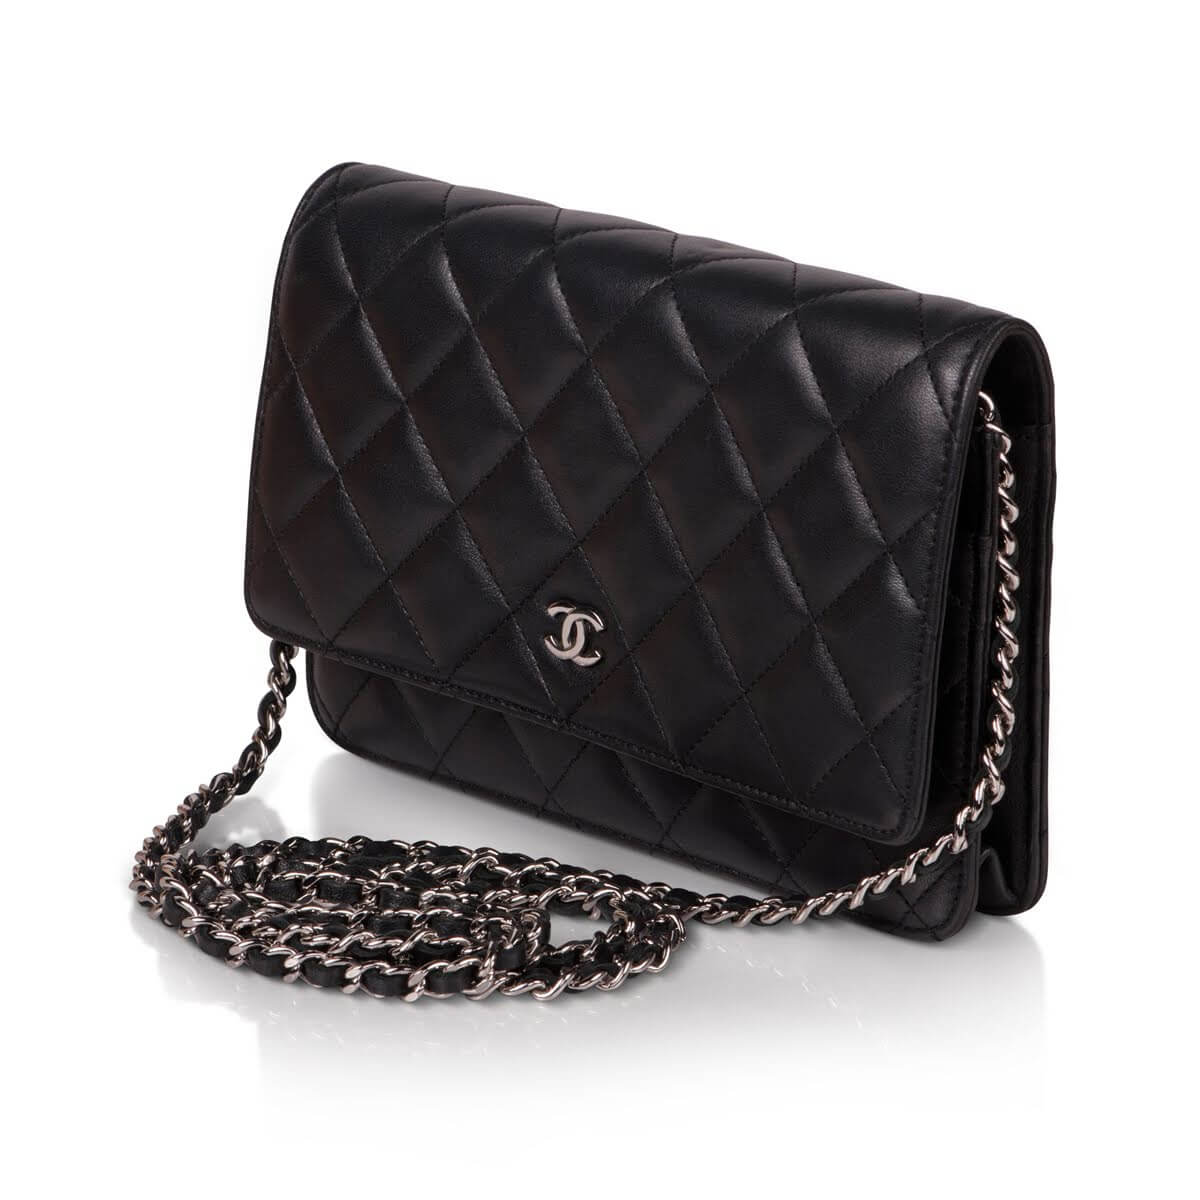 Chanel Wallet on a chain handbag